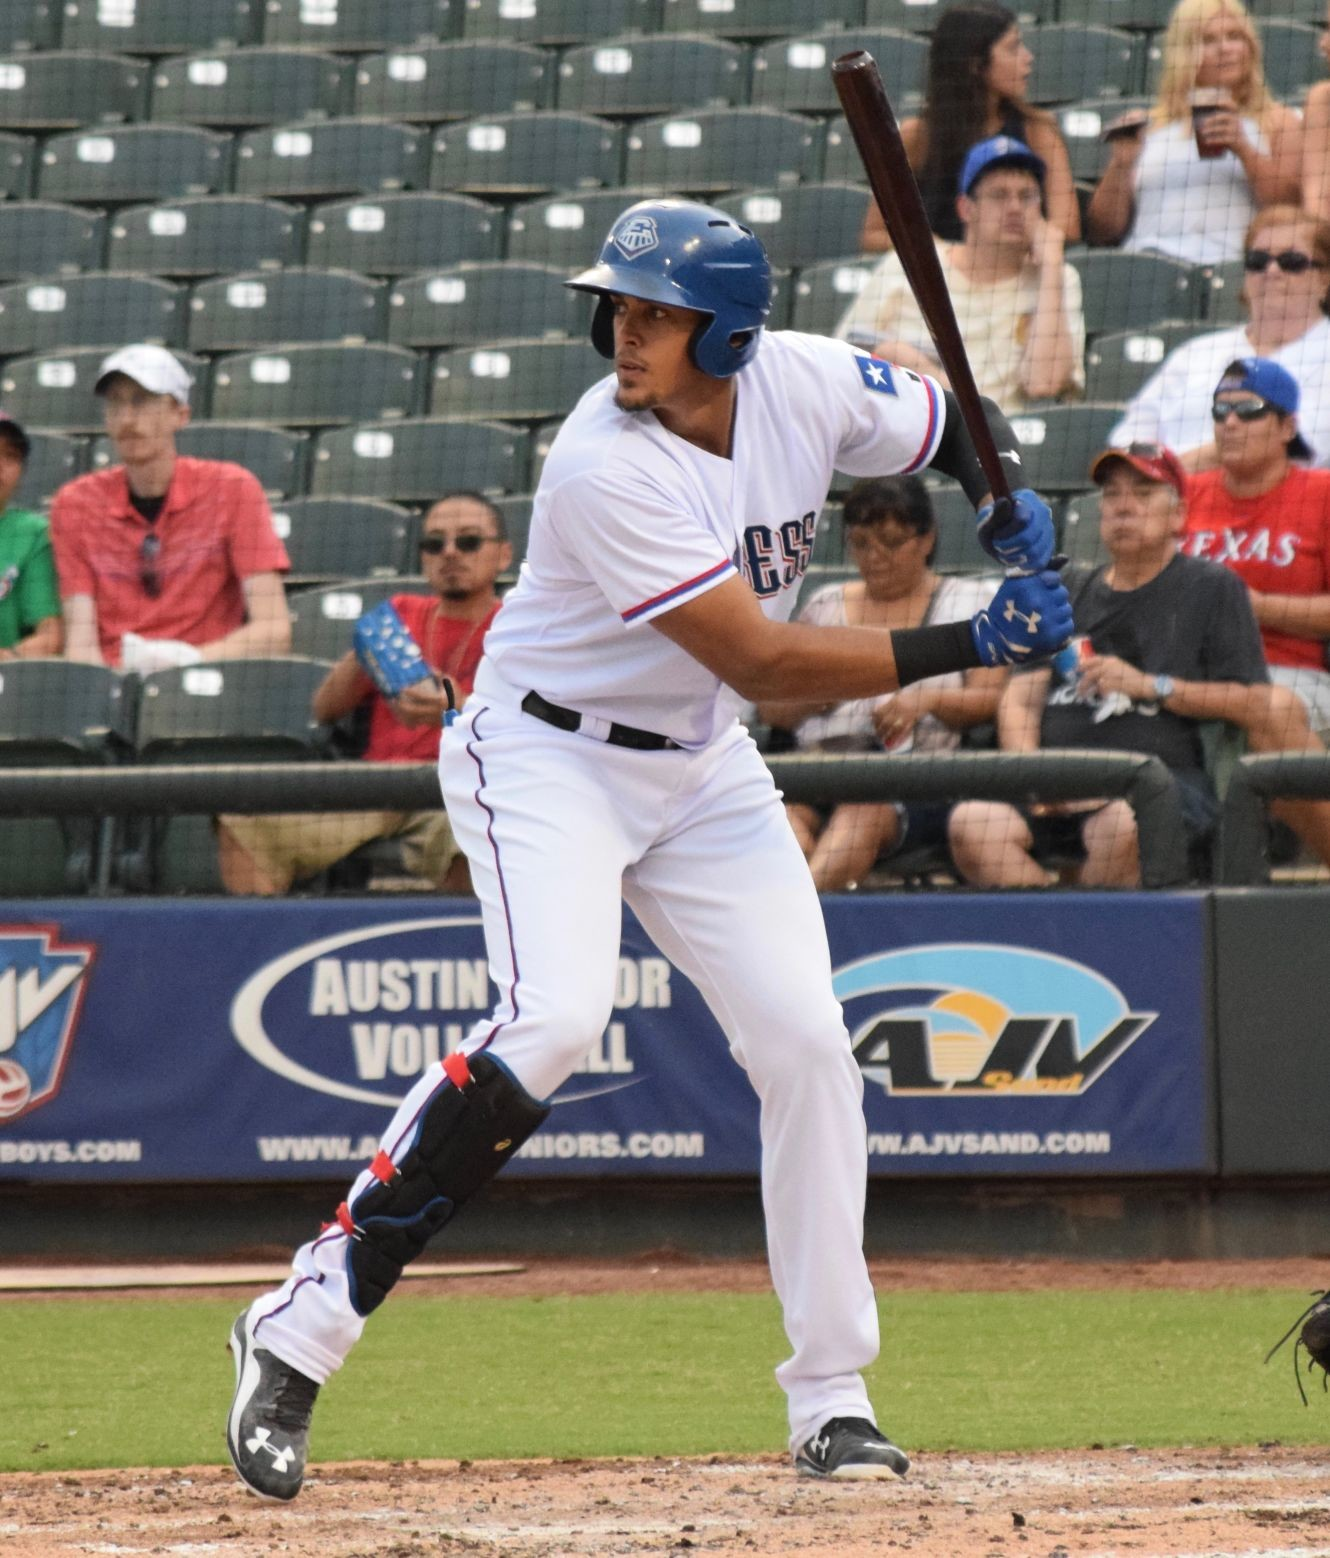 Ronald Guzman wasn't a Triple-A All-Star this season and instead used the time off to recharge his batteries and spend time with his family visiting from the Dominican Republic.